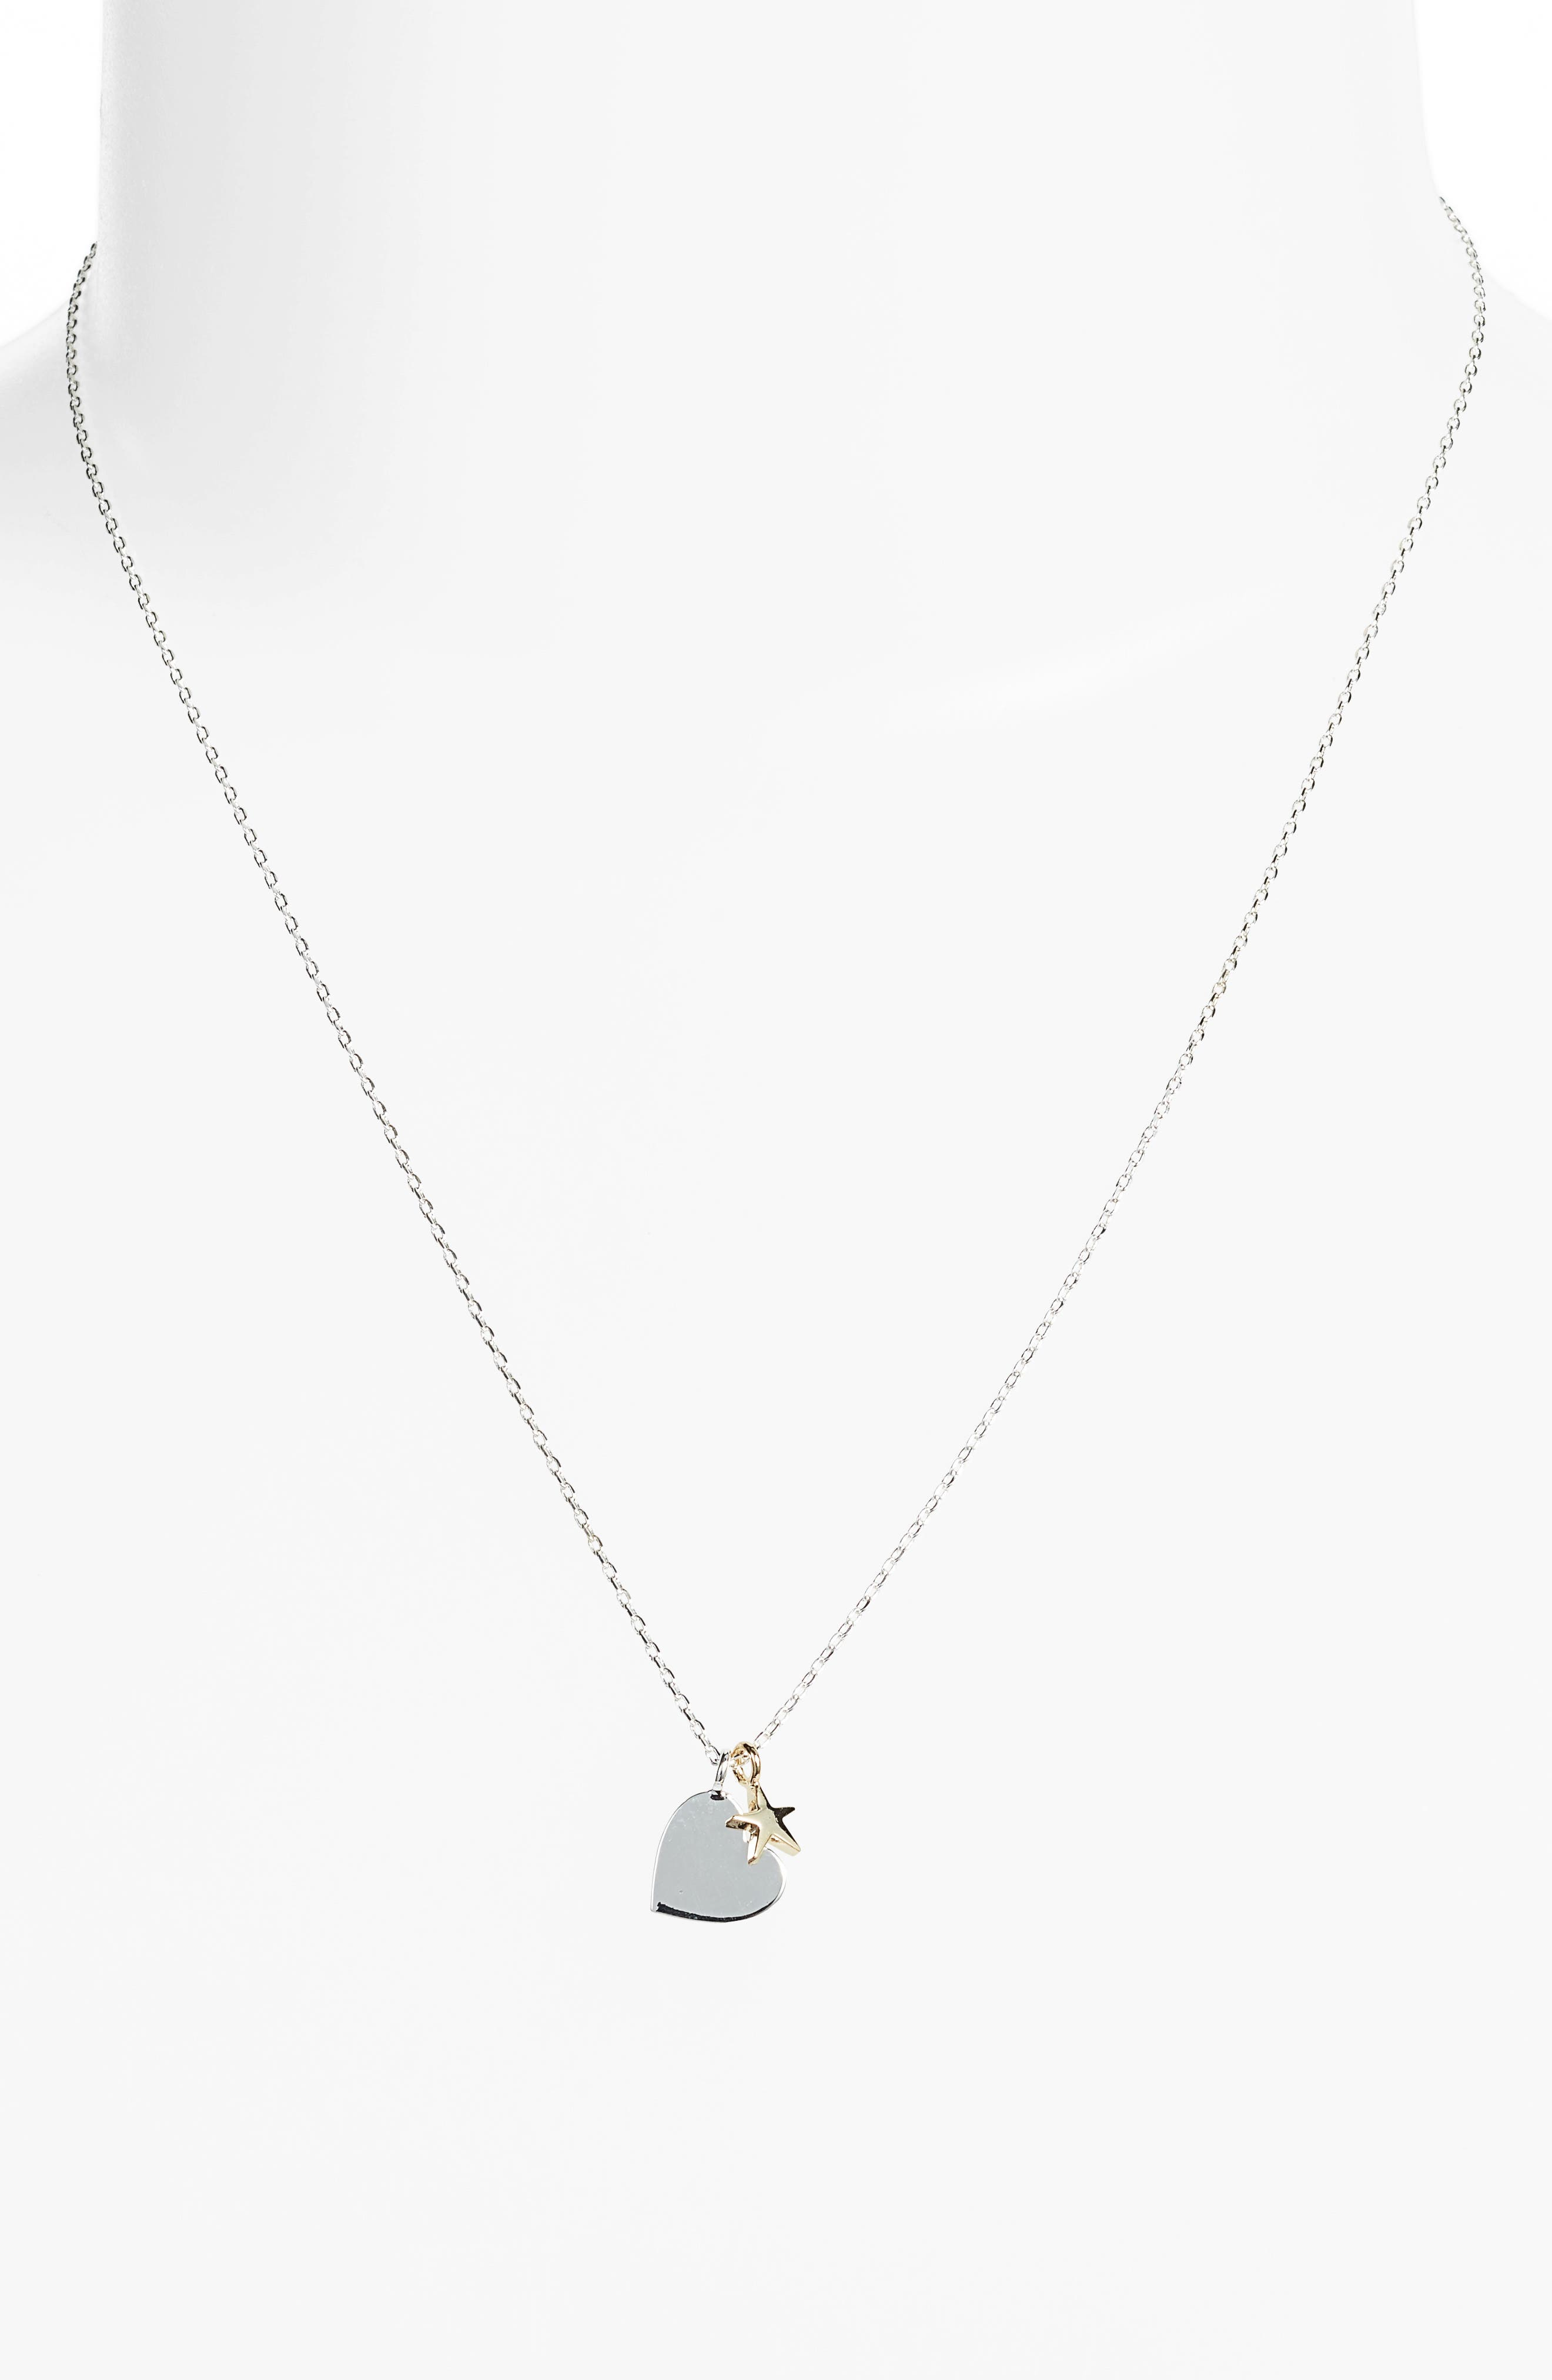 Heart Double Charm Necklace,                             Alternate thumbnail 2, color,                             Silver/ Gold